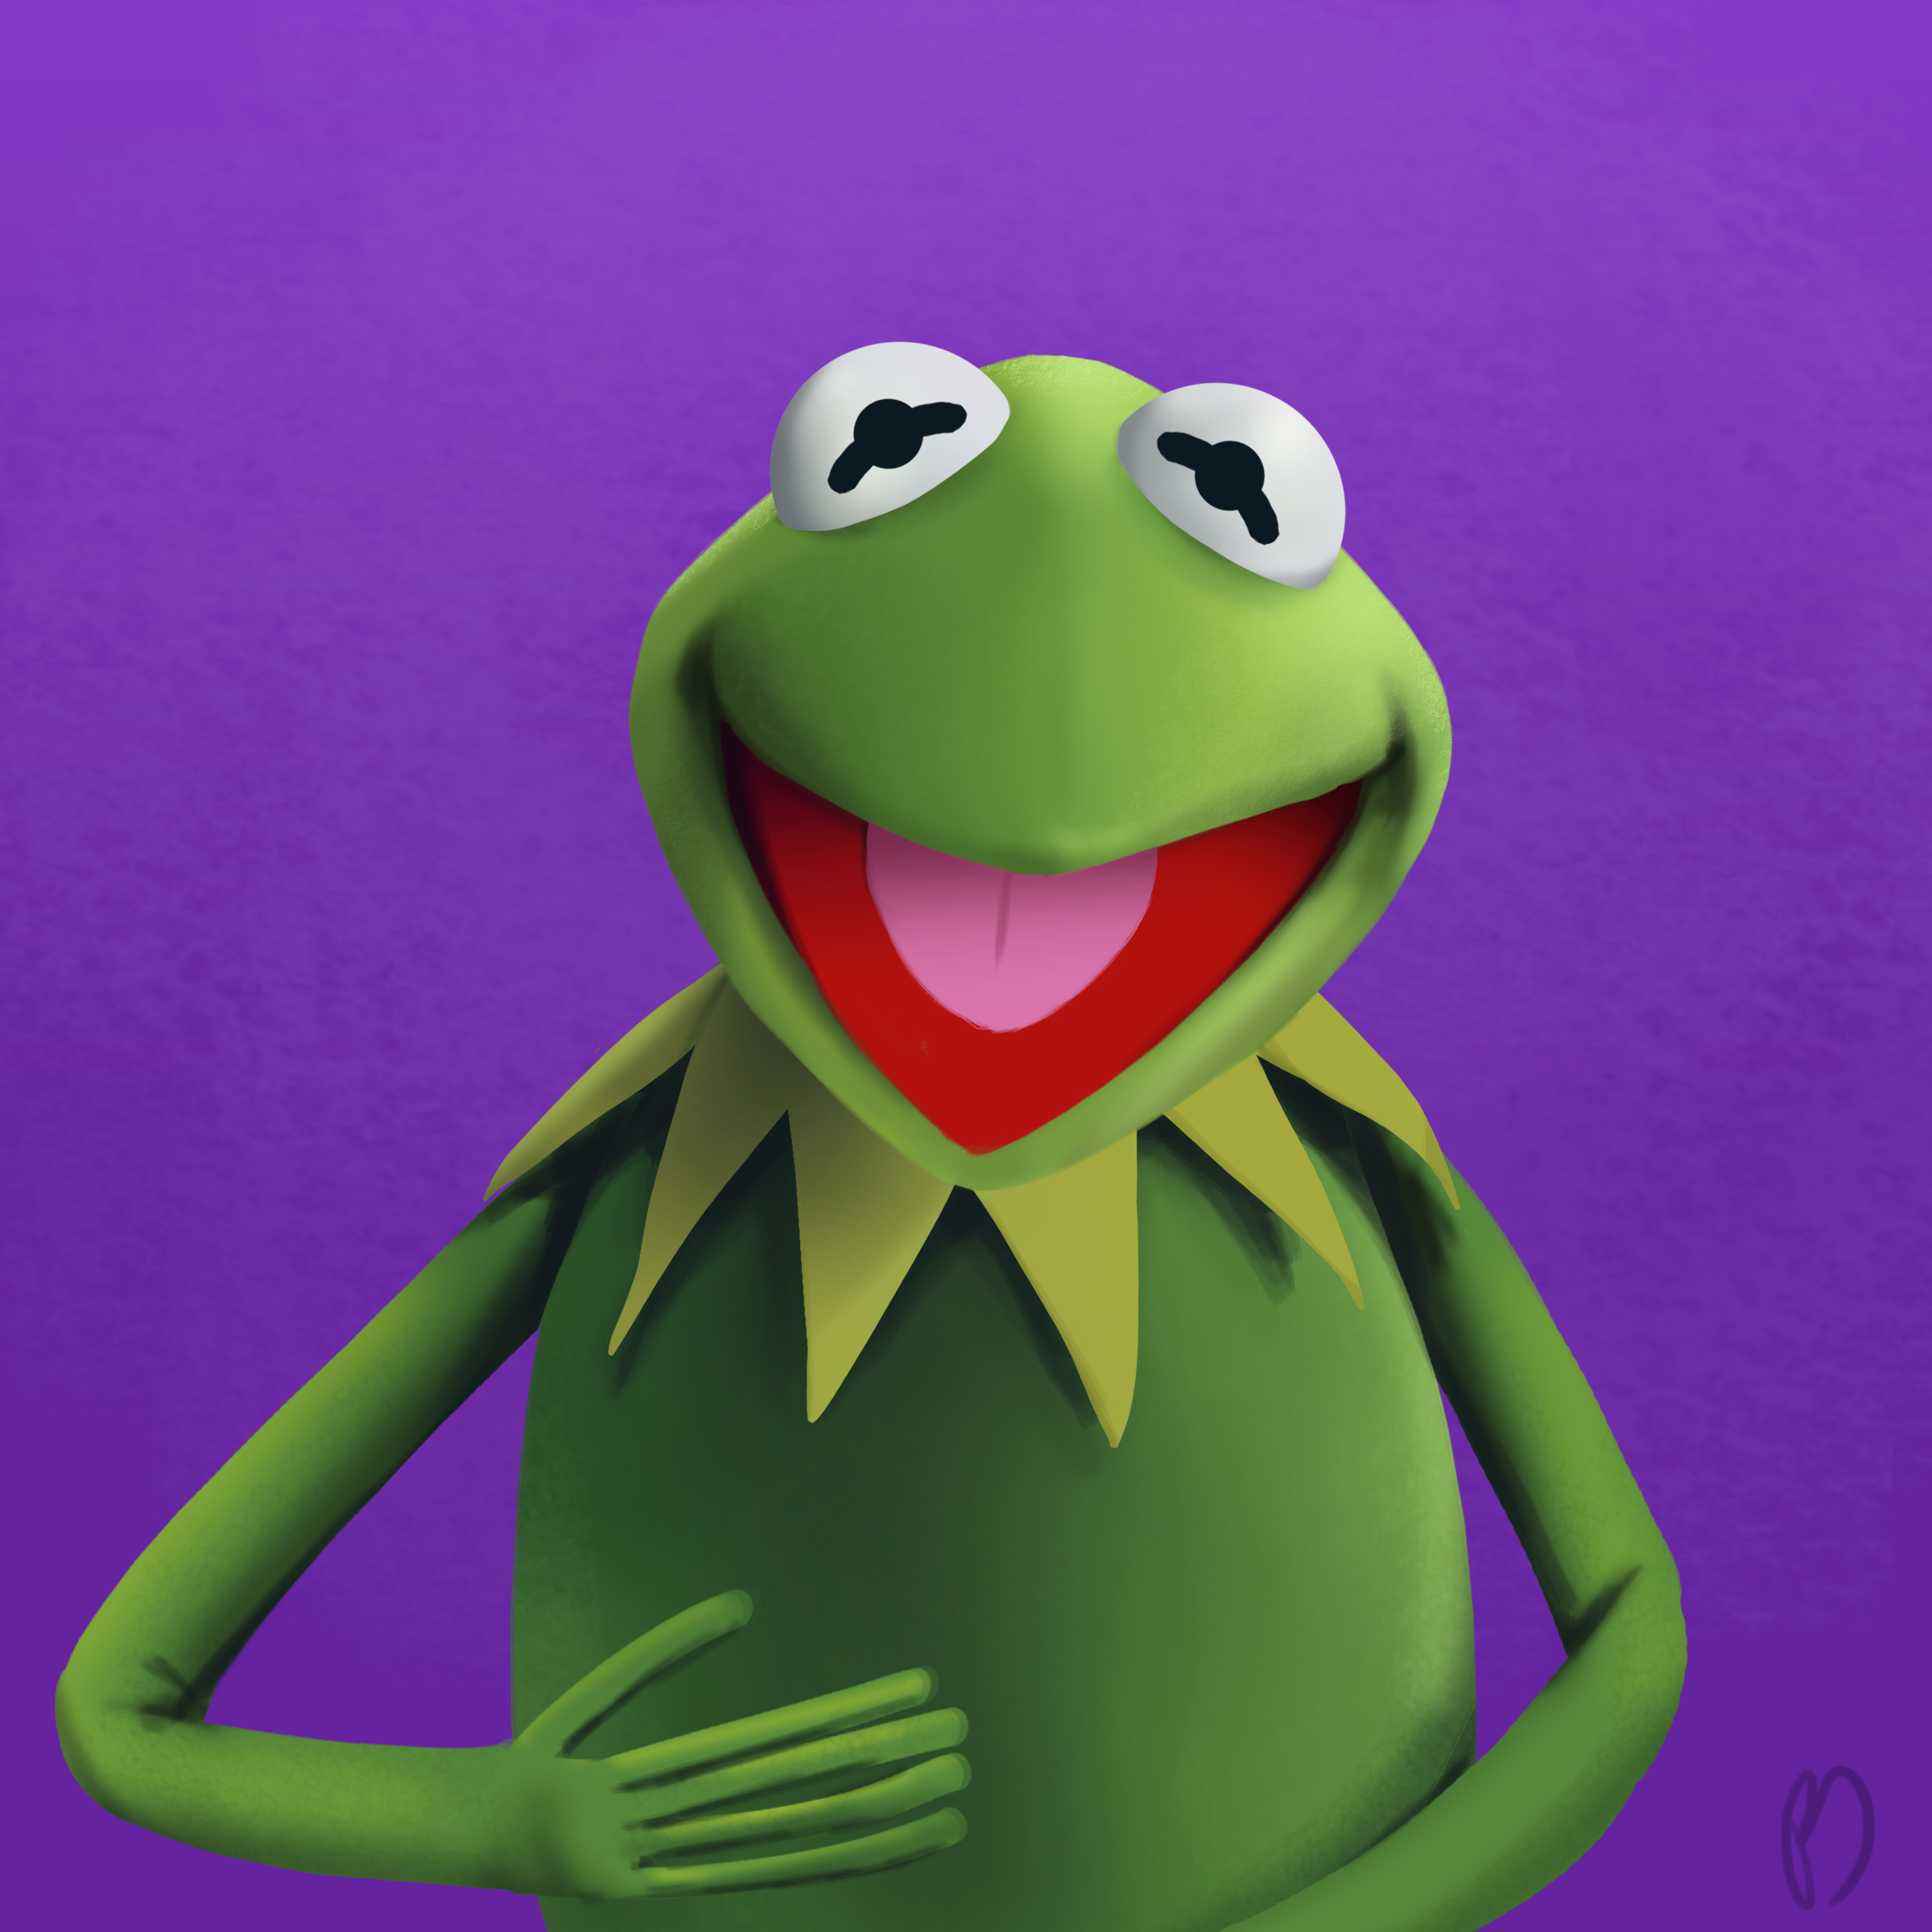 How to Draw Kermit the Frog advise